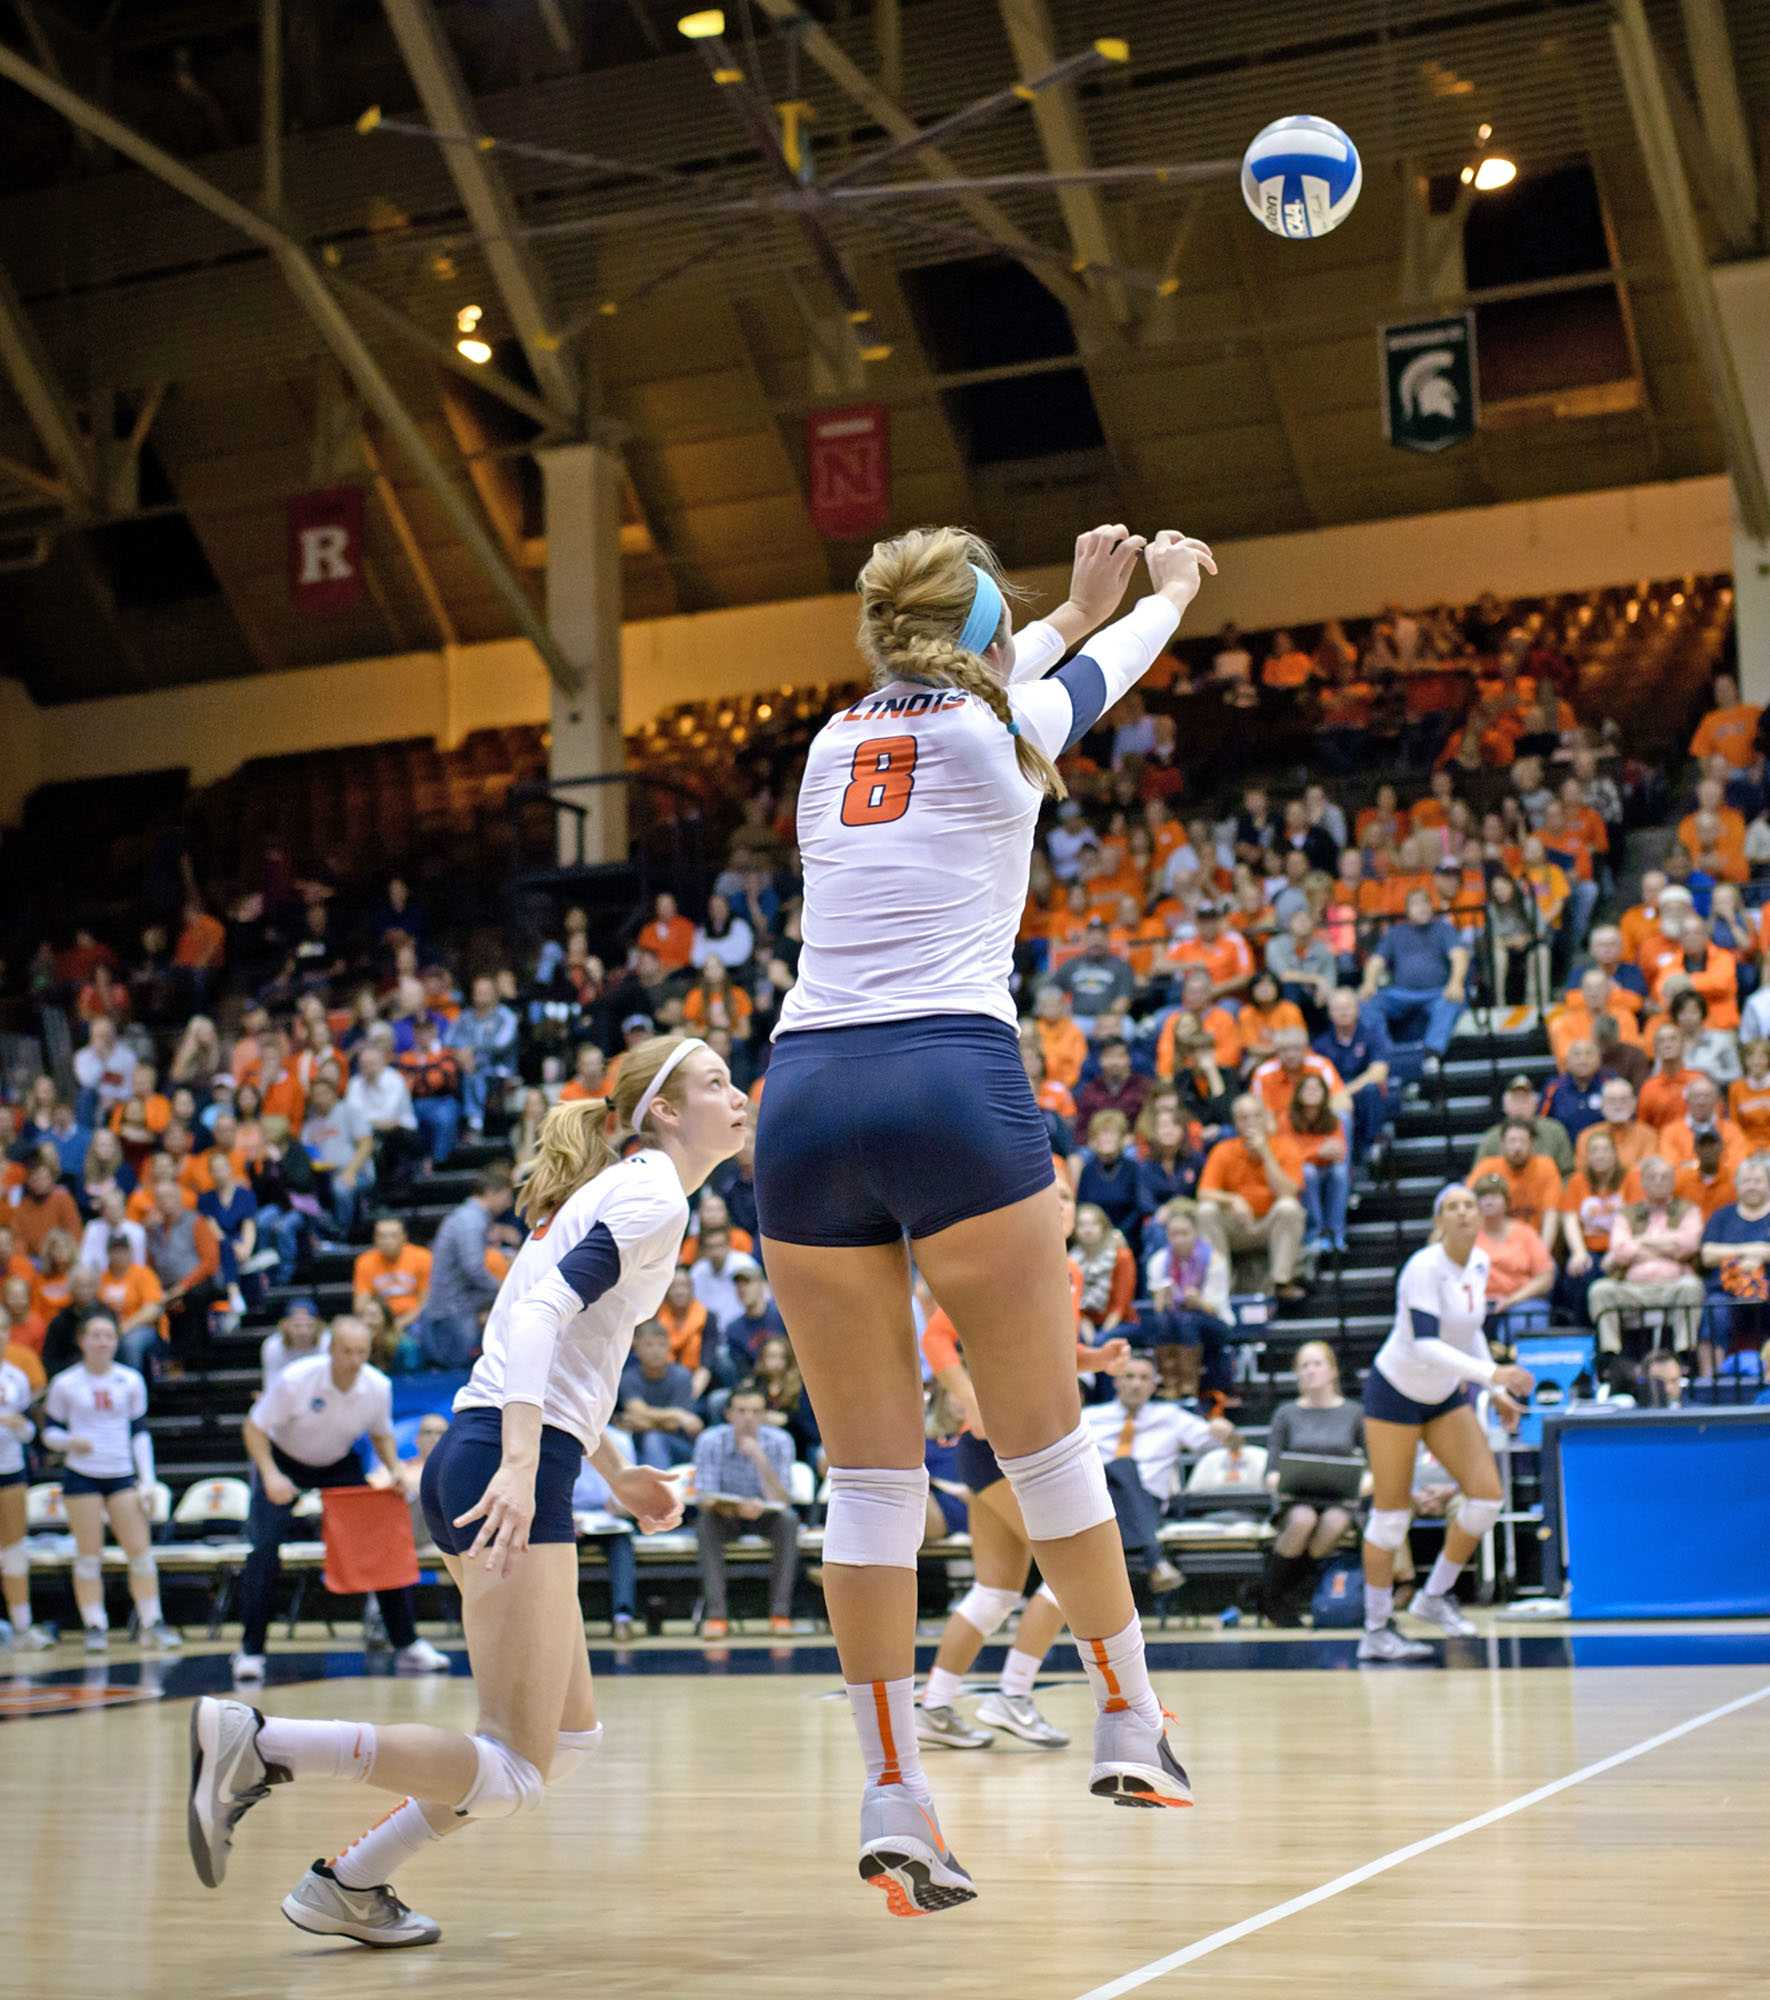 Illinois' Alexis Viliunas (8) sets the ball during the game versus Iowa State at Huff Hall on Friday, December 6, 2014.The Illini won 3-0.